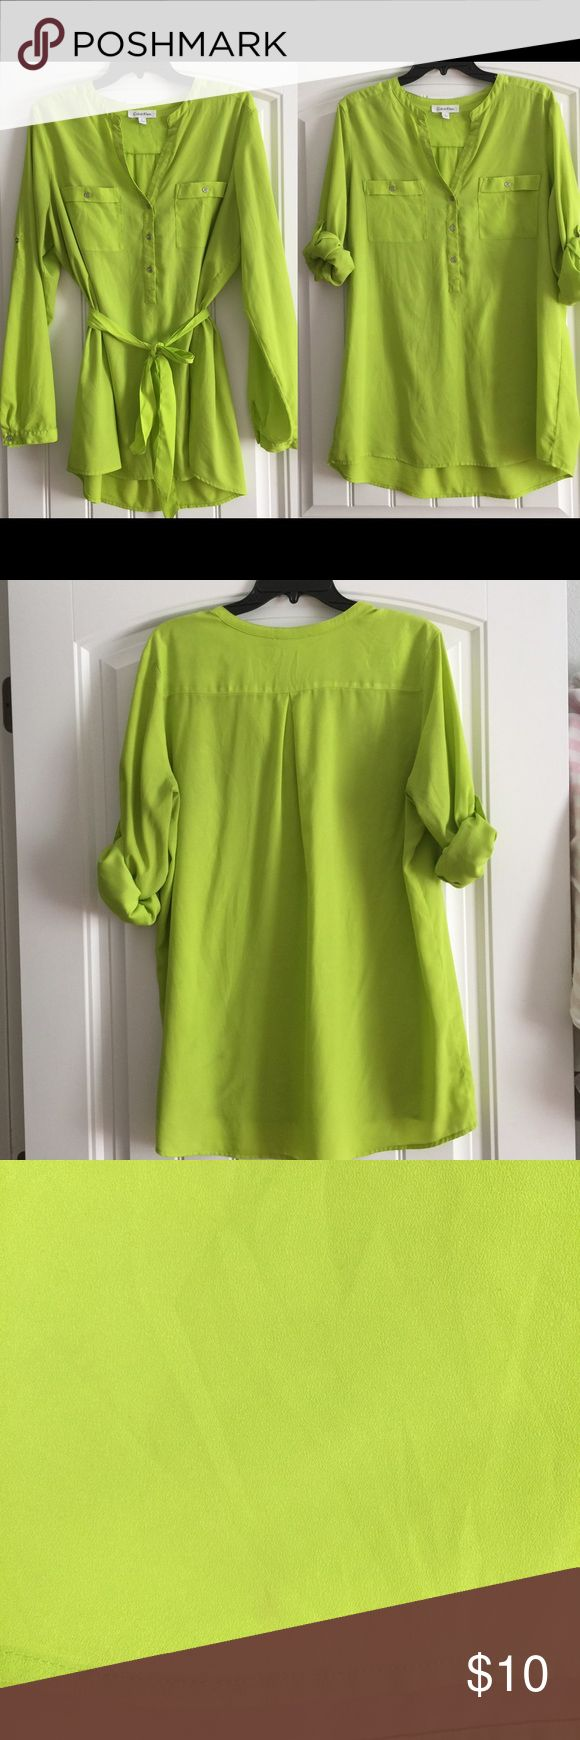 Neon lime green shirt Has a utility sleeves and belt but no belt loops making it easy to wear without the belt. Has some spots. Will possibly come out haven't tried. Noticed them as I was taking pics. This was never in the dryer so the stains haven't set. Calvin Klein Tops